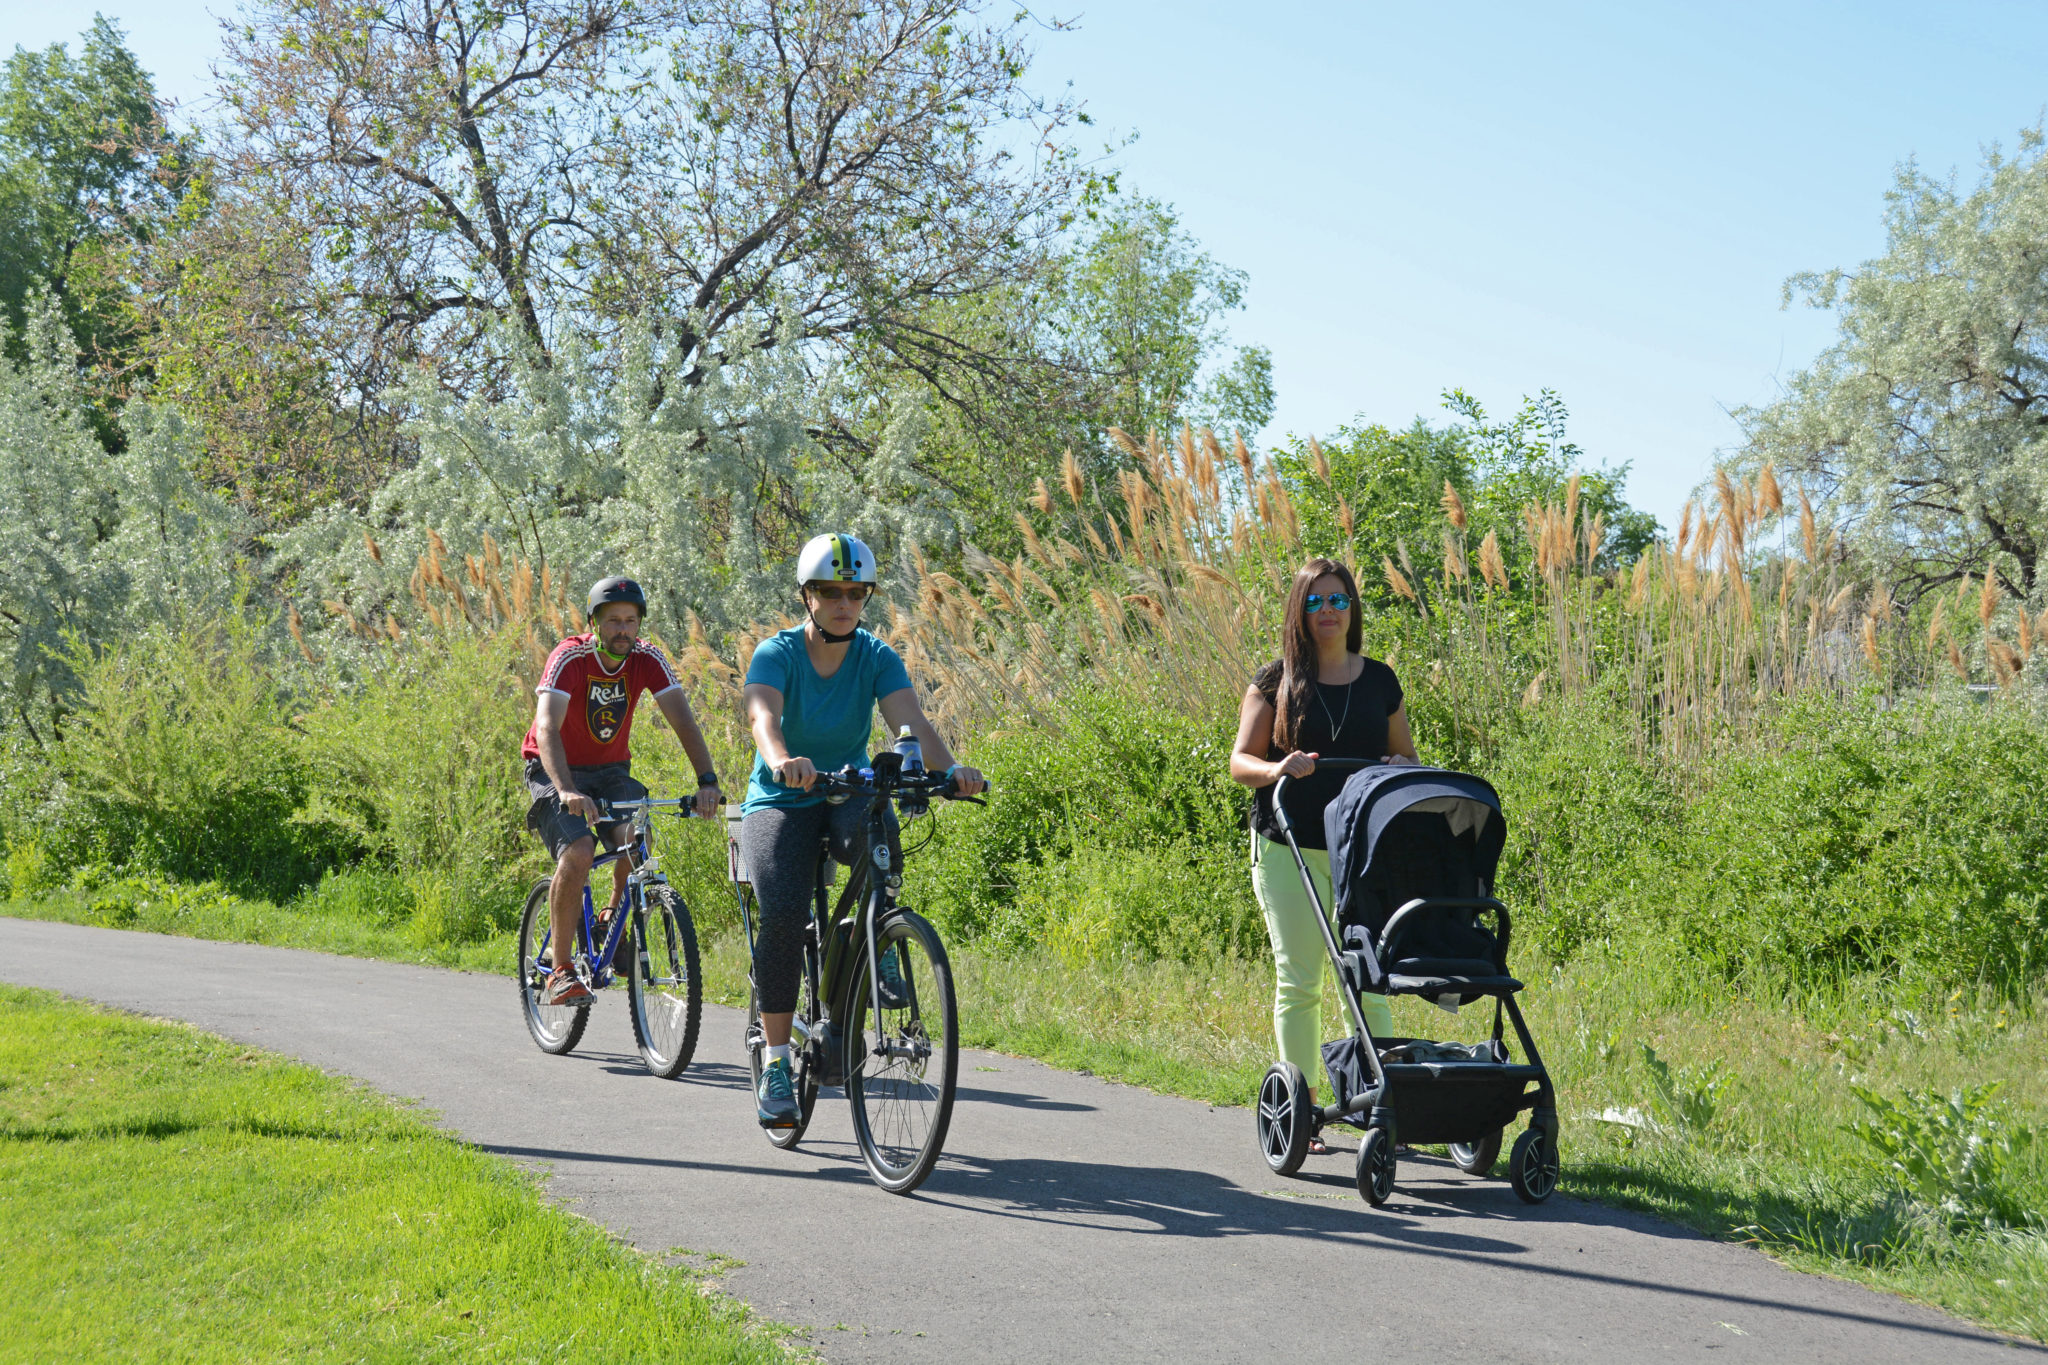 Bicyclists And A Walker With A Stroller Utilize The Golden Spoke Trail Network (Jordan River Trail).